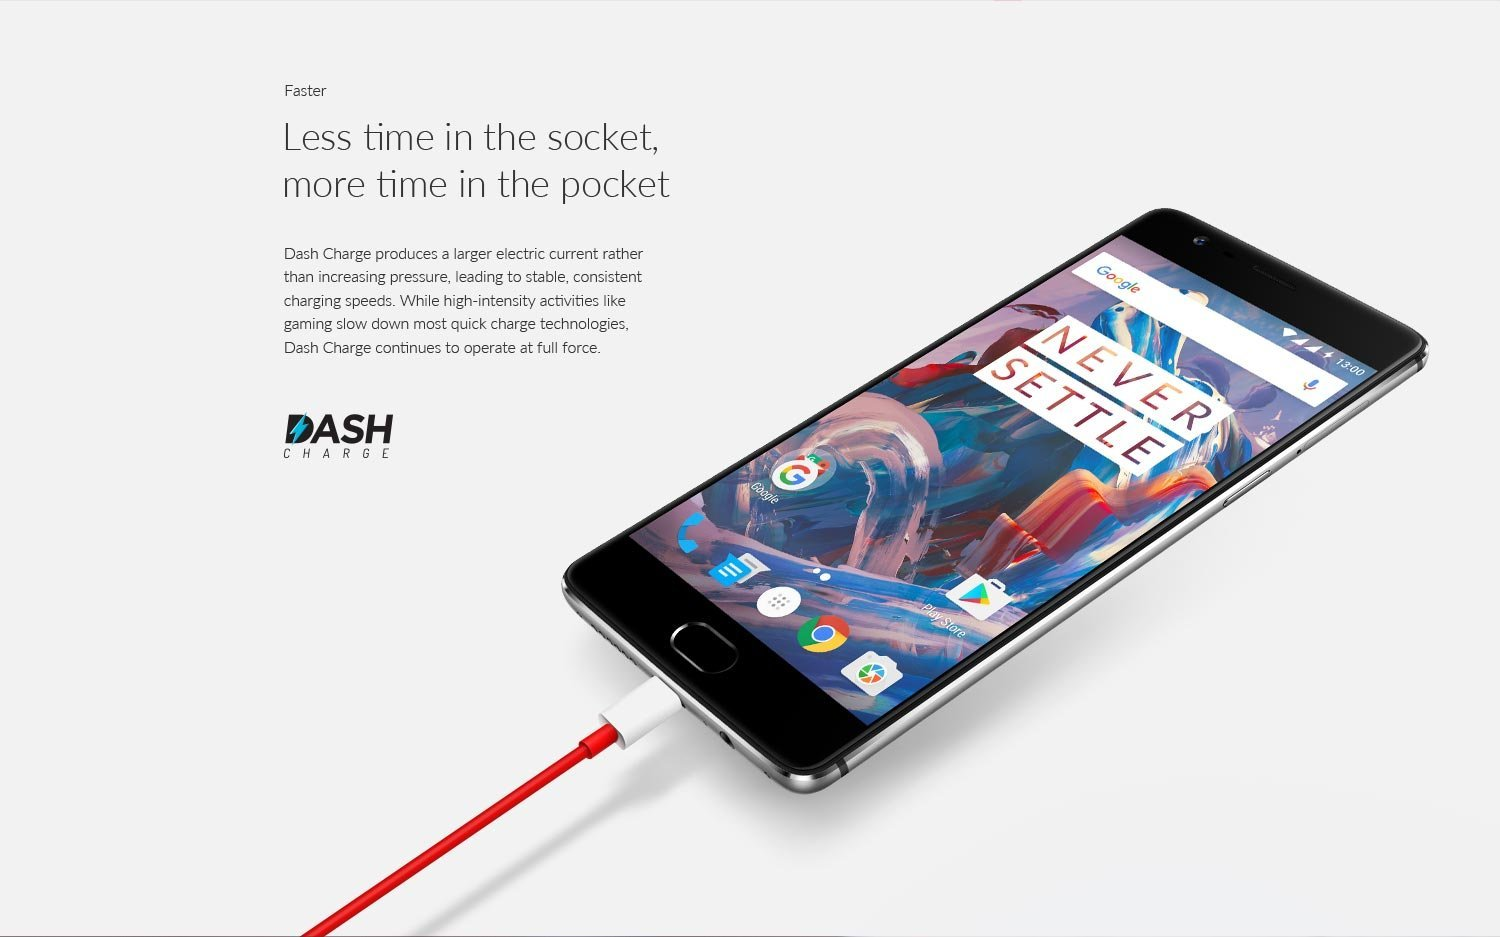 OnePlus 3 - Dash Charge (3)